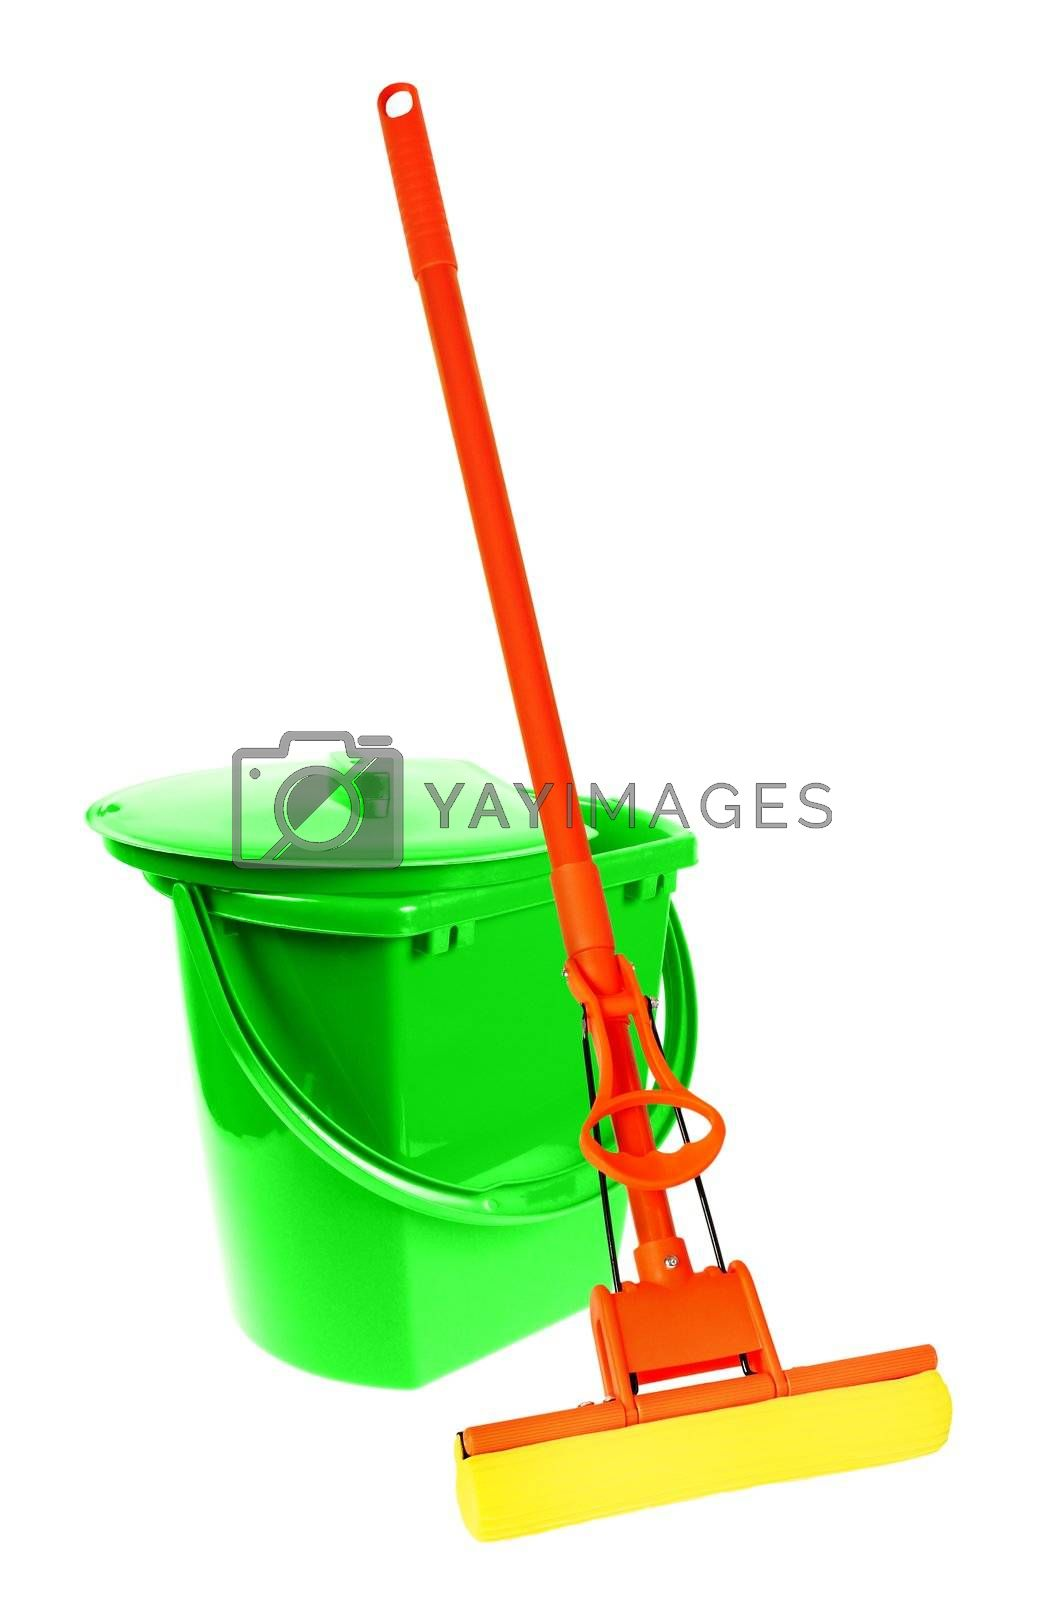 Mop and bucket for washing floors. Isolated on white background